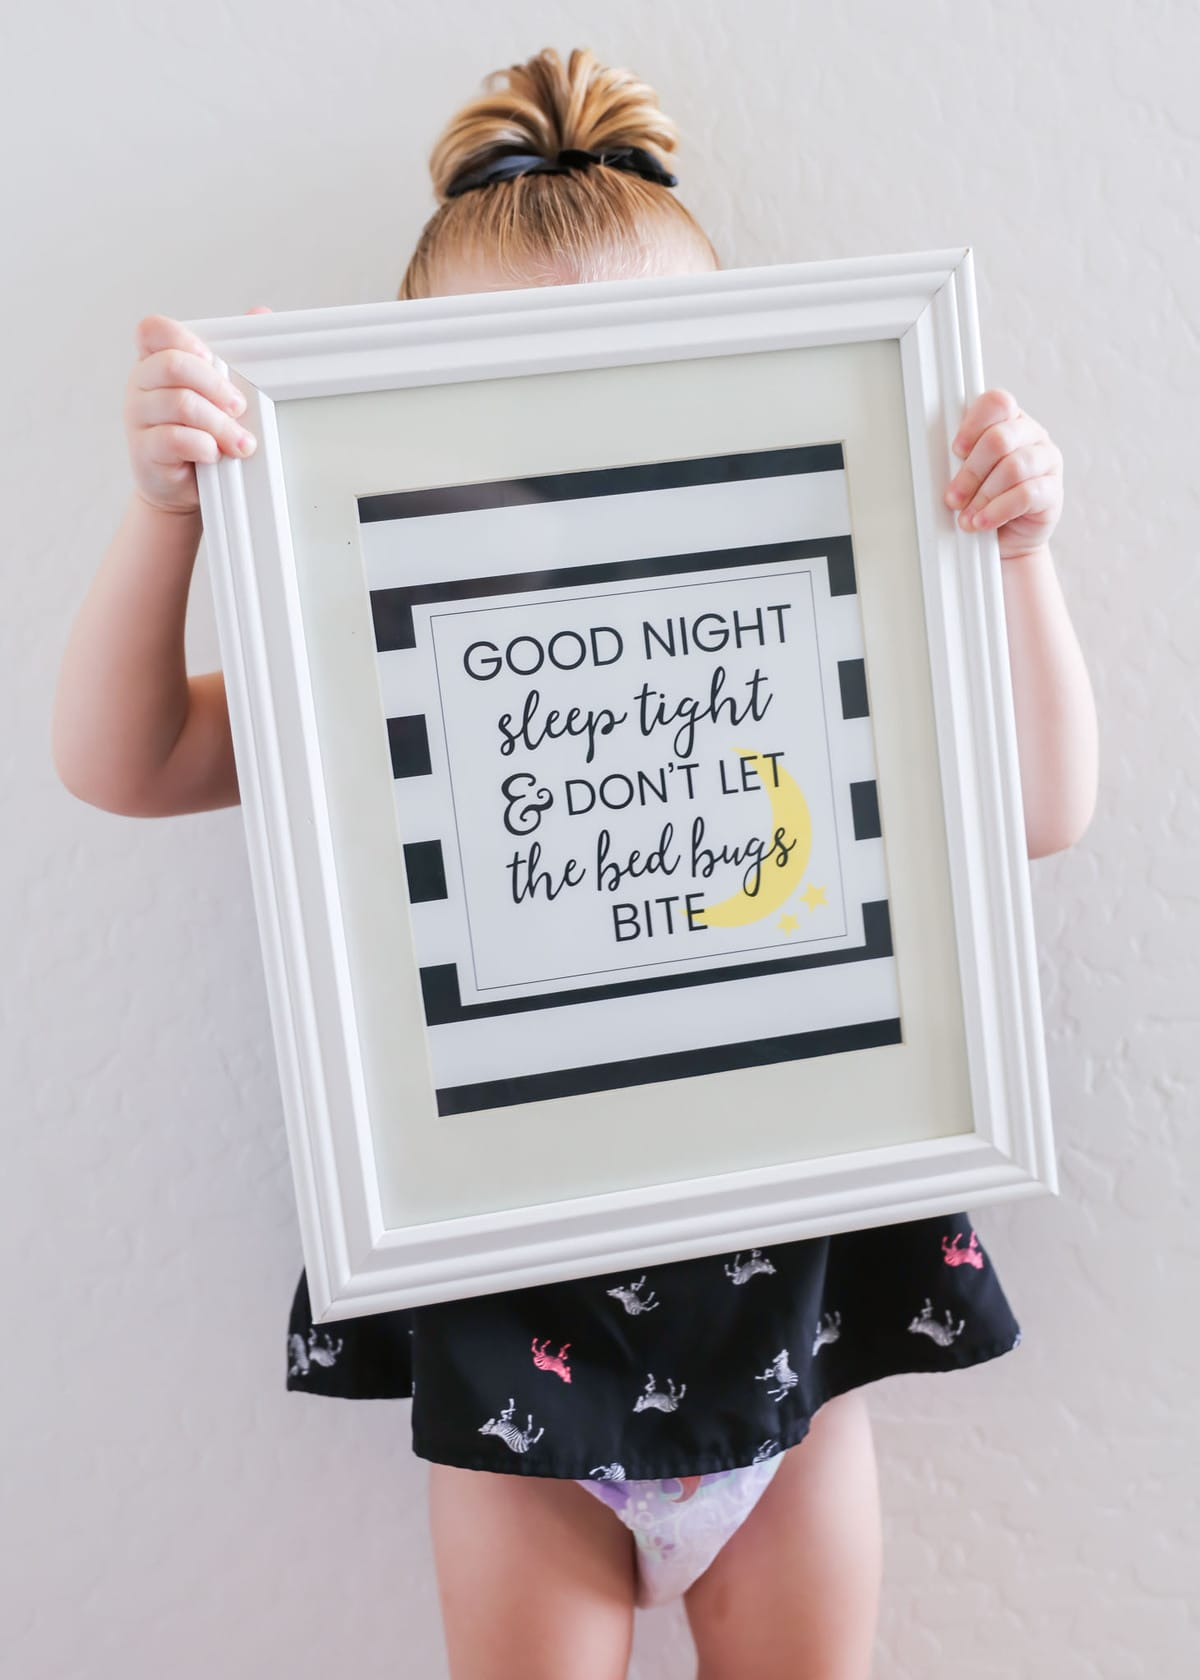 What I wish I had known about nighttime wetting - tips, tricks and how Sam's Club and Goodnites have had our family manage it.